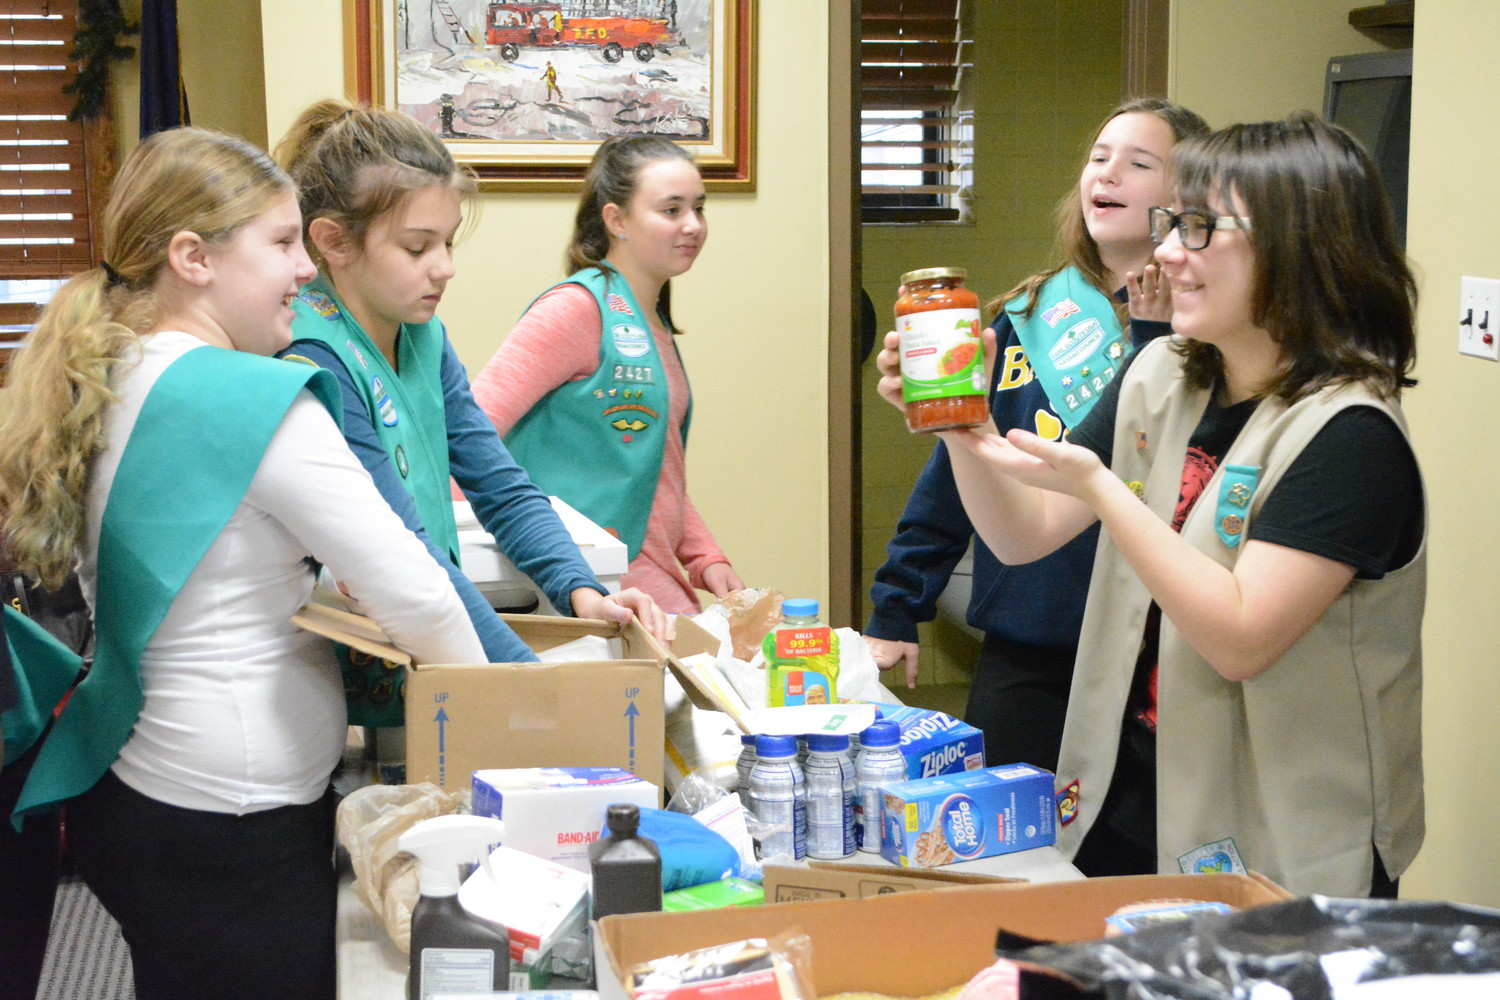 The scouts had fun, laughing and joking around as they sorted through donations from the community.